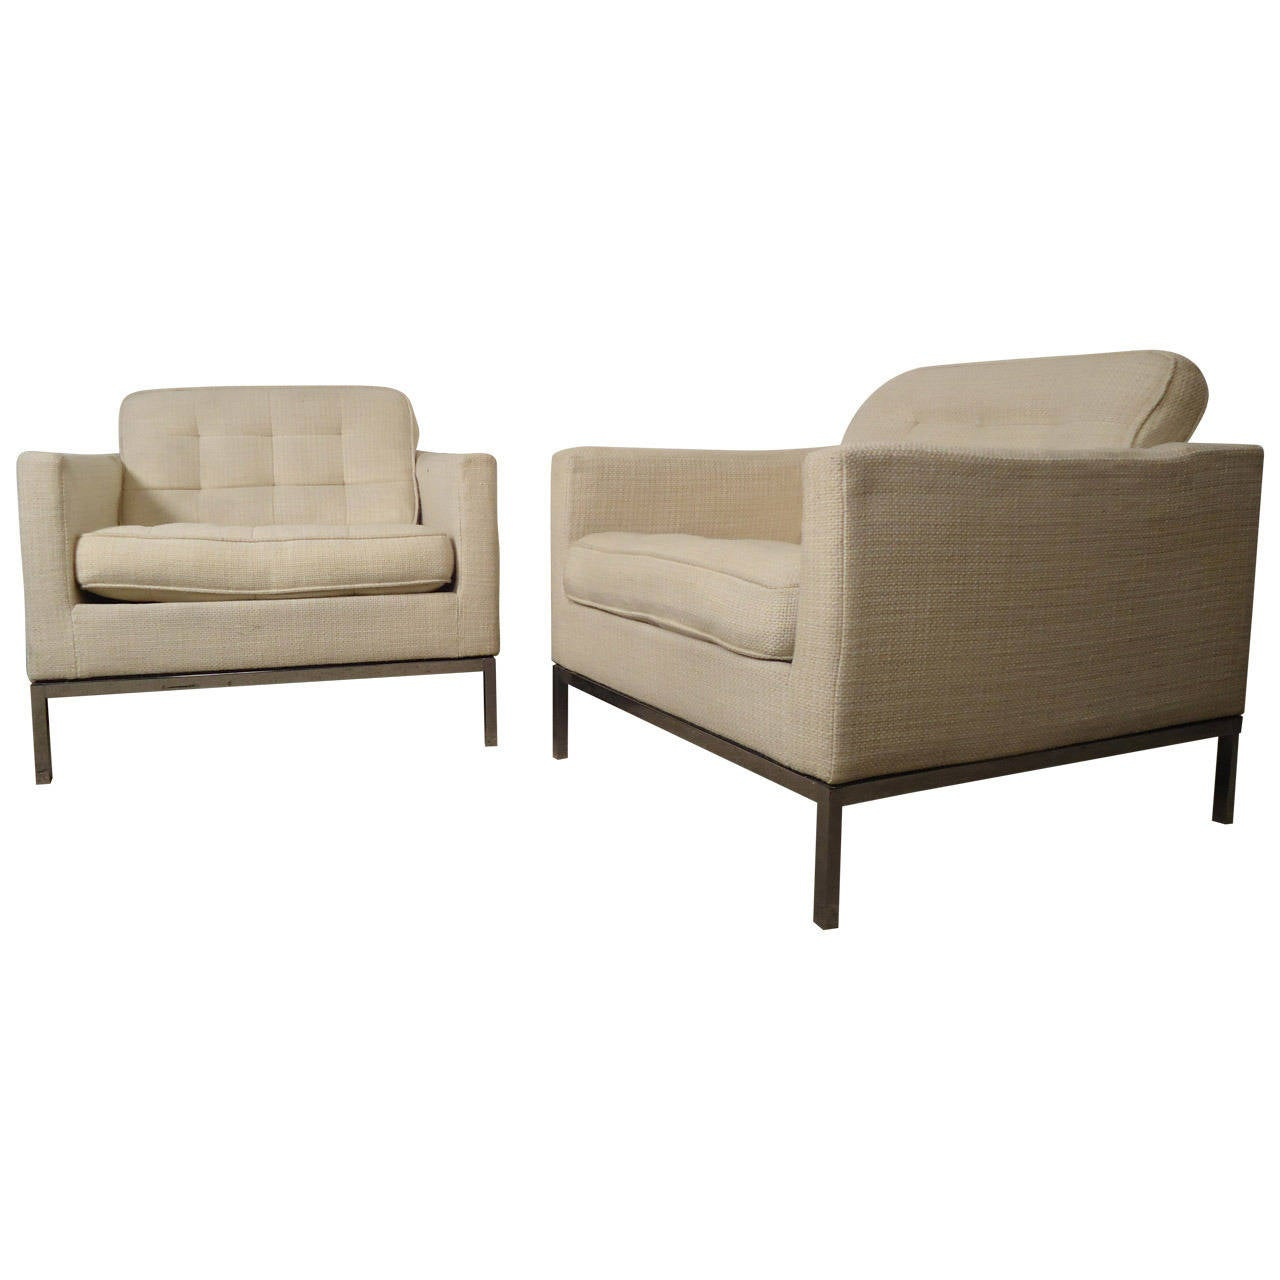 Mid century pair of upholstered armchairs by knoll for Knoll and associates